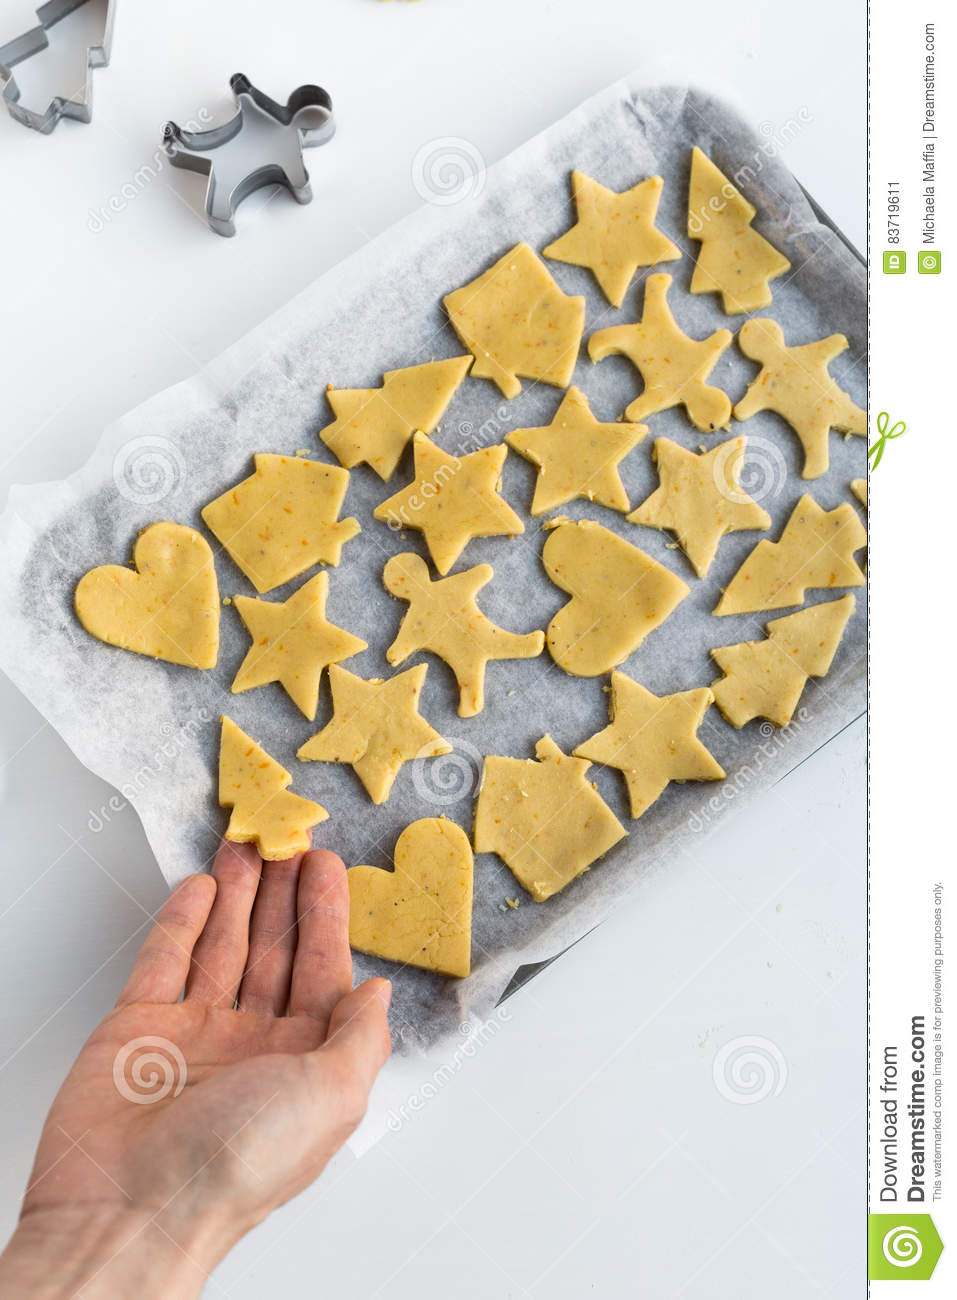 Overhead View Of Sweet Biscuit Dough Cut Into Festive Christmas Shapes On Baking Tray Stock Photo